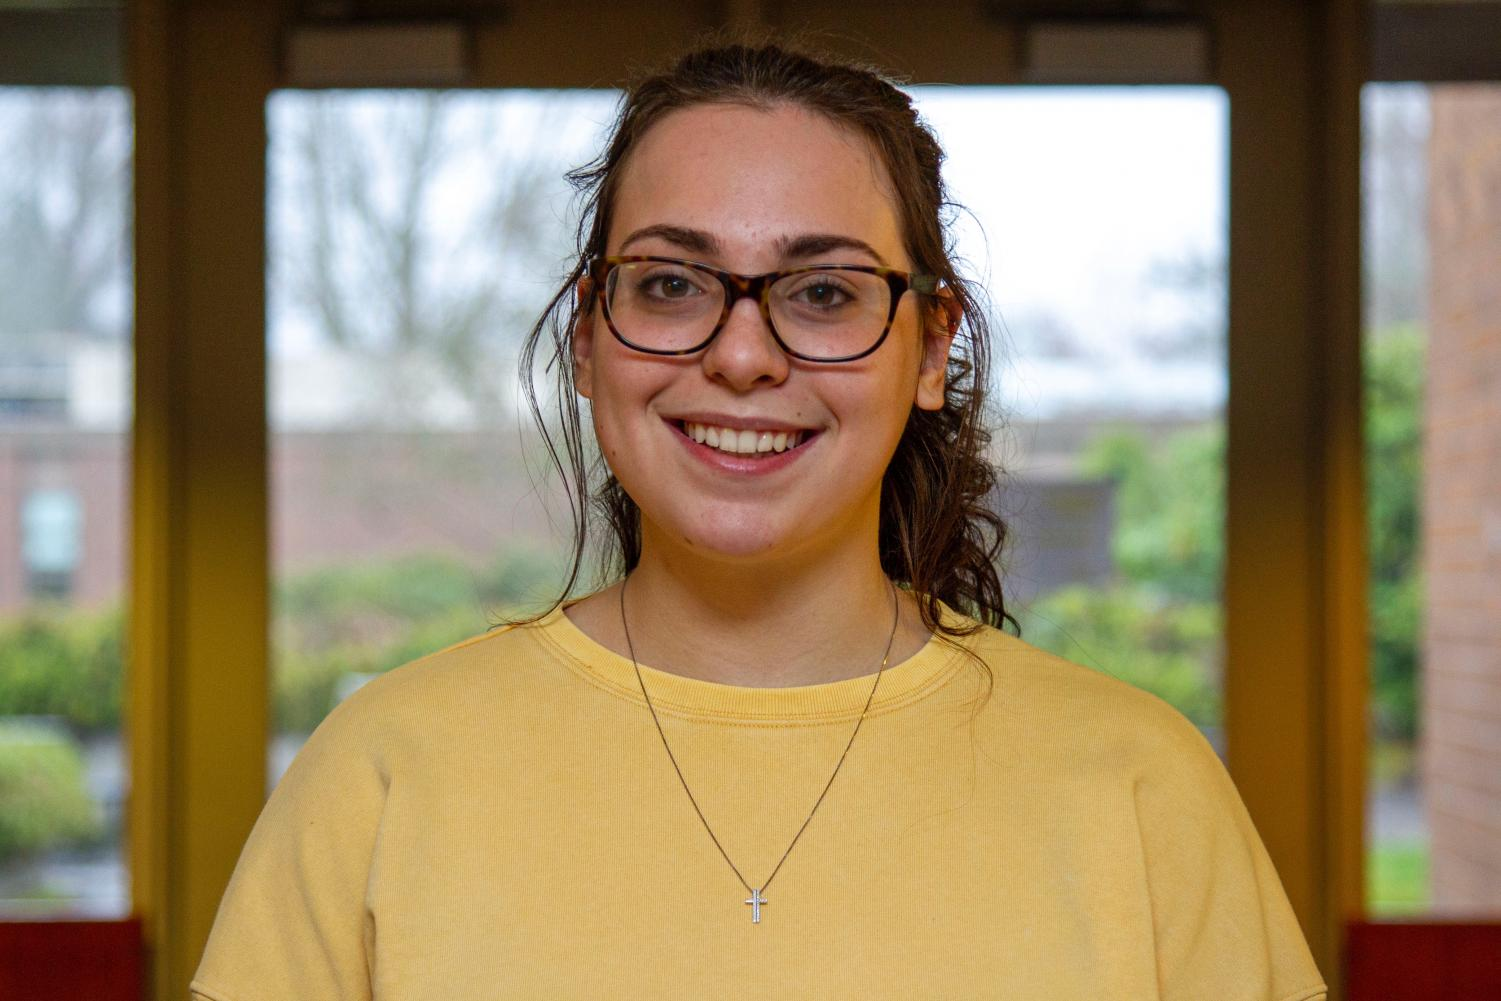 Senior Mackenzie Widmer is enrolled in four AP classes and one Honors class, all while maintaining a 4.119 GPA.